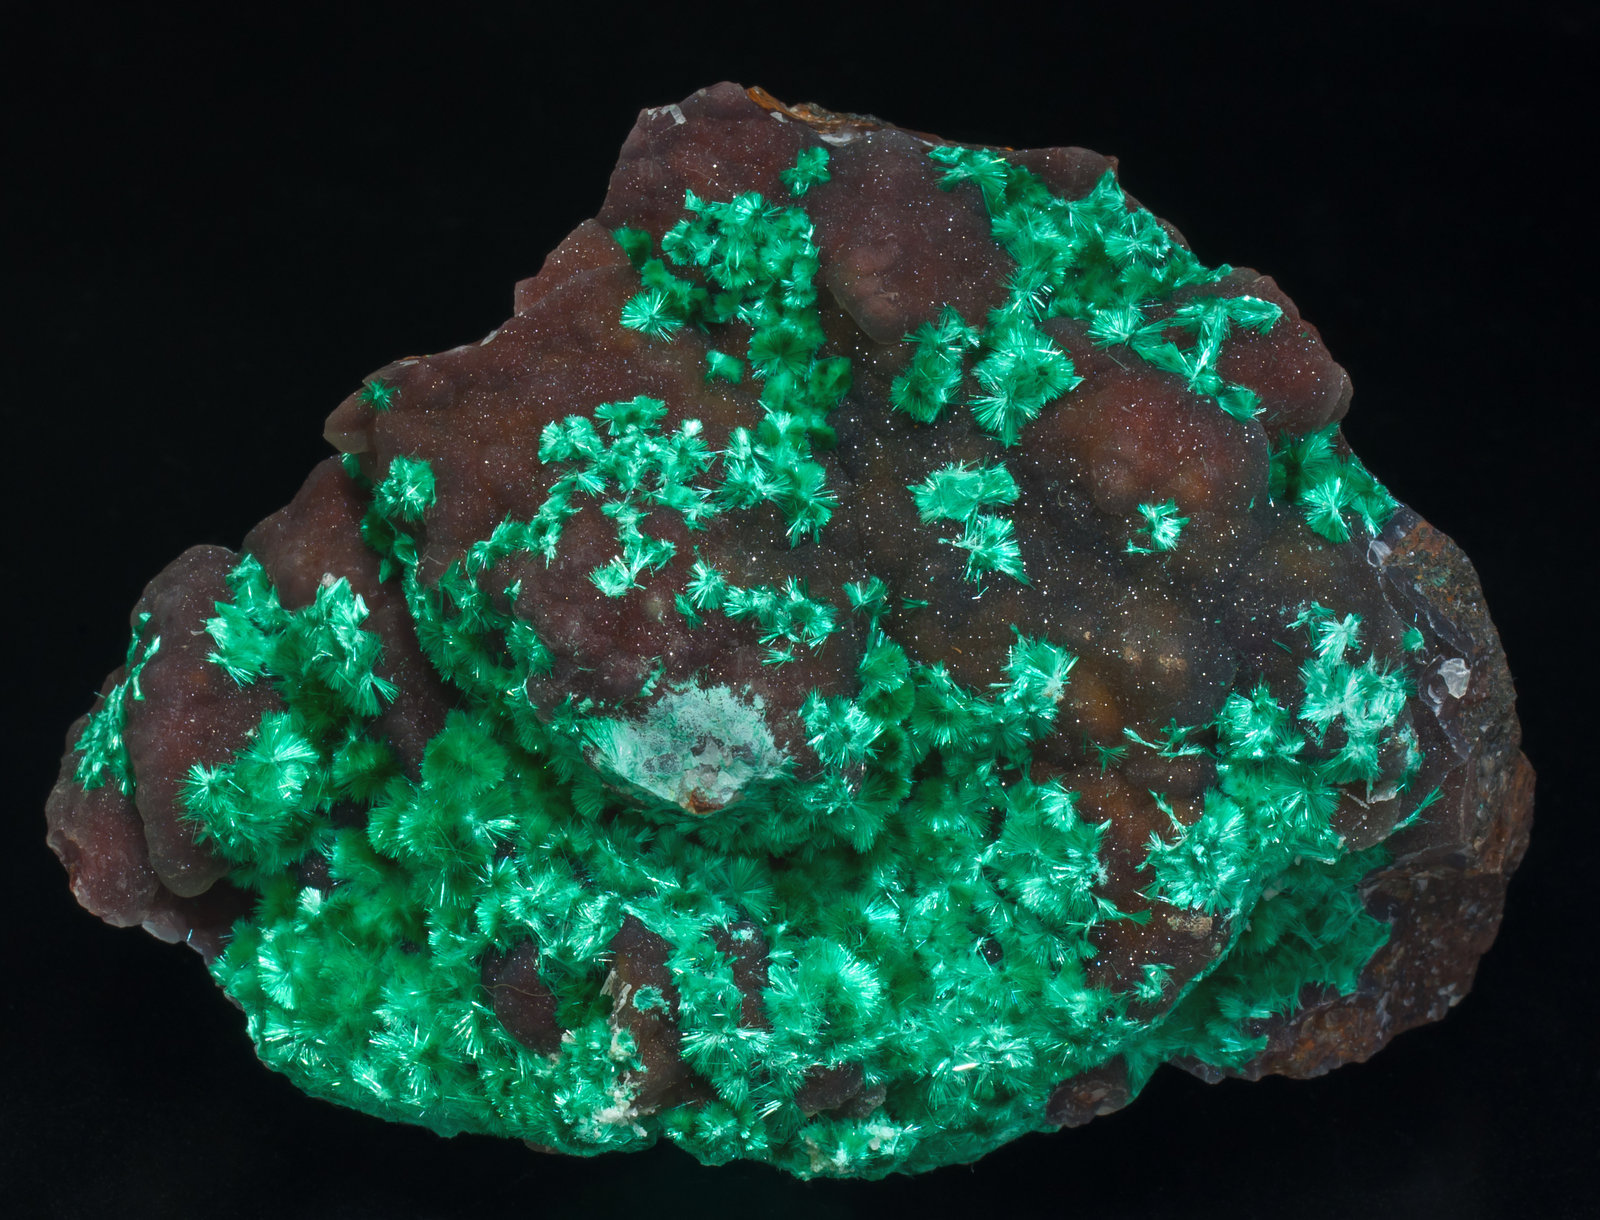 specimens/s_imagesAE3/Brochantite-EB48AE3f.jpg